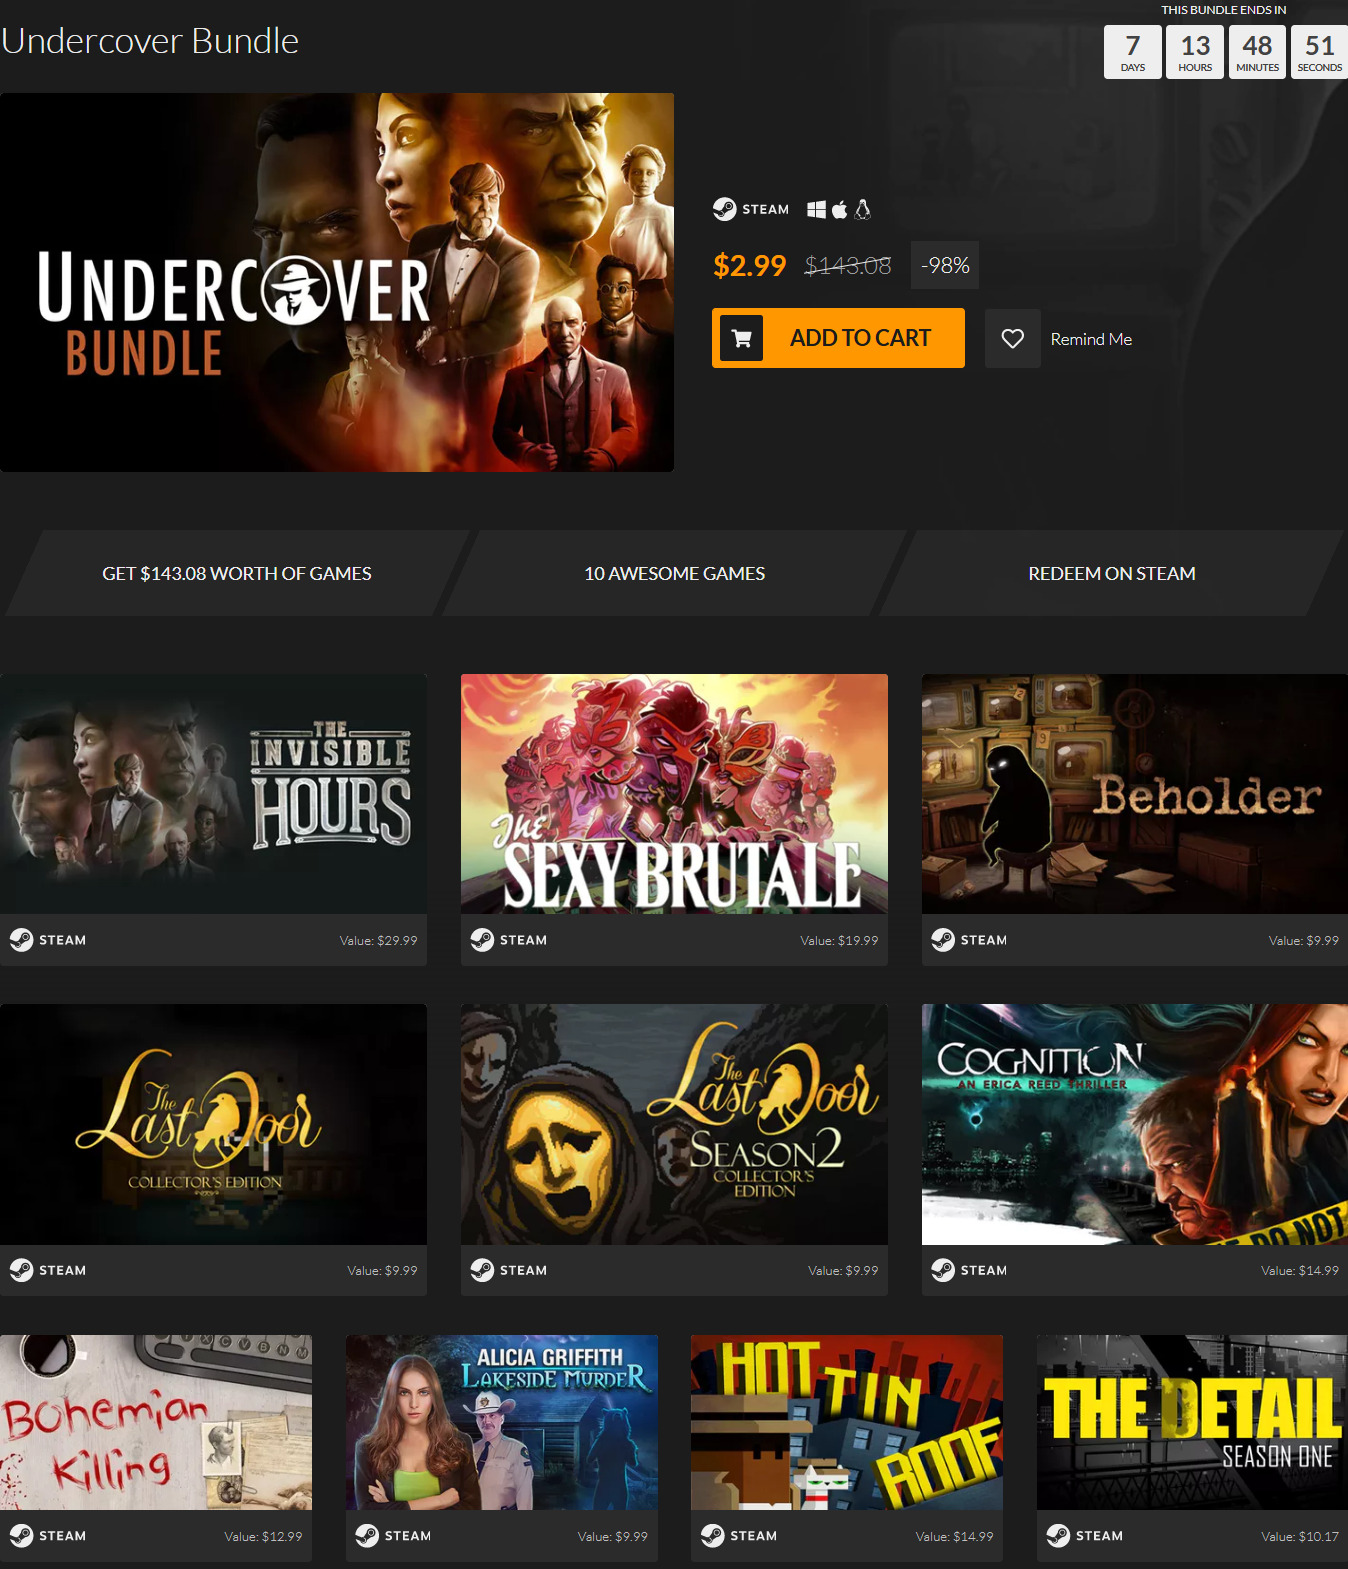 Screenshot_2019-03-28 Undercover Bundle Steam Game Bundle Fanatical.jpg